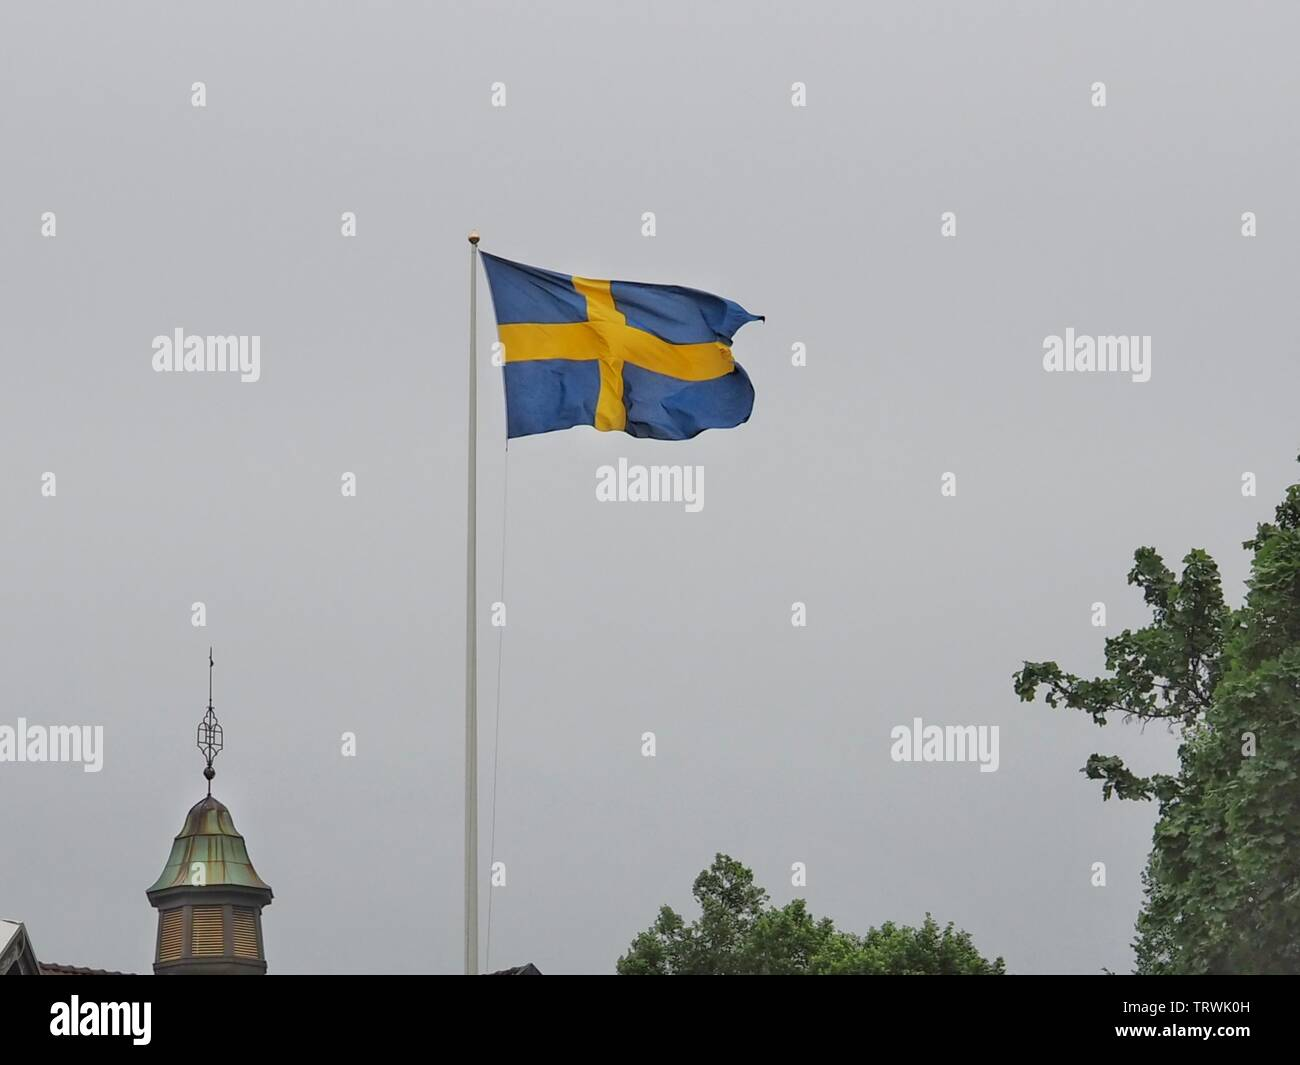 The swedish flag in a grey cloudy sky - Stock Image